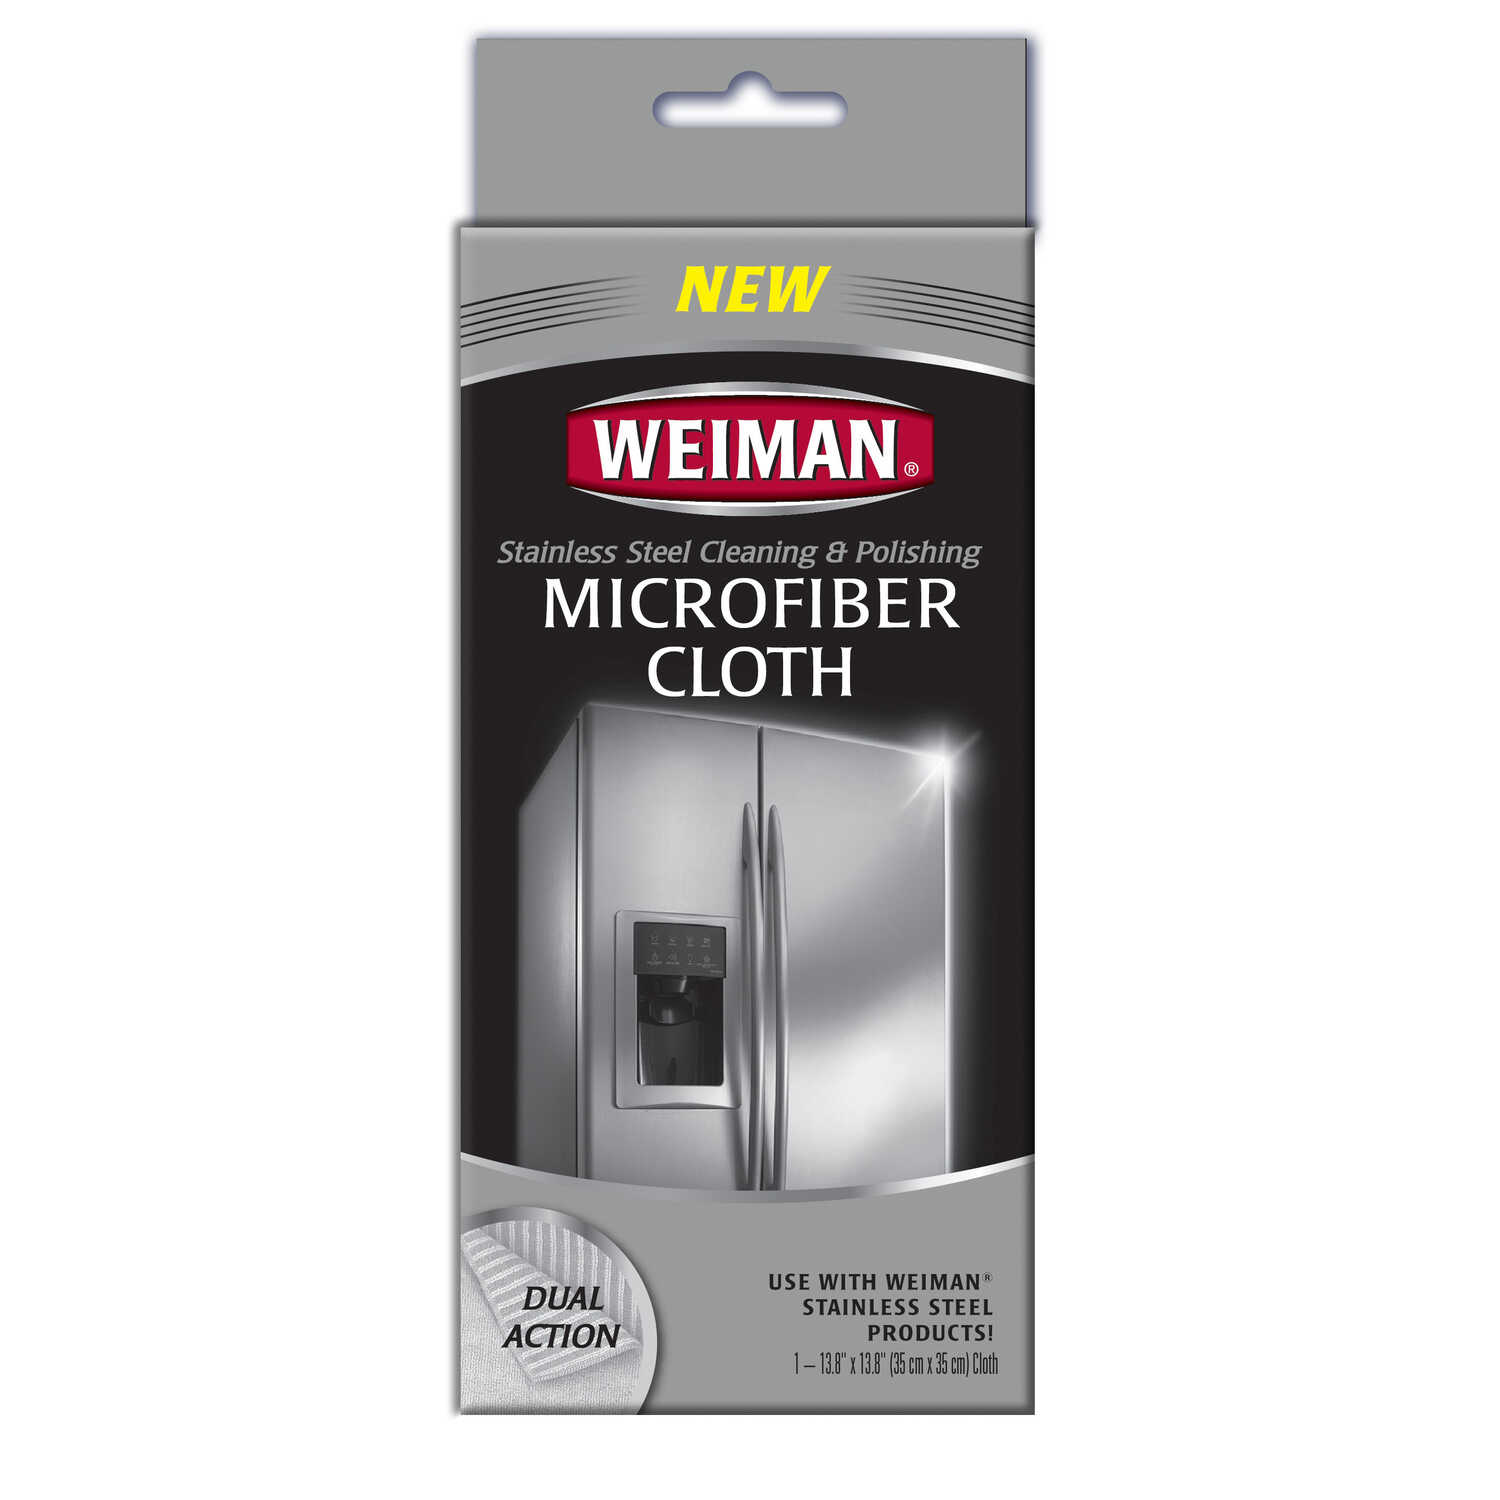 Weiman  Microfiber  Stainless Steel Cleaning and Polishing Cloth  13.8 in. W x 13.8 in. L 1 pk